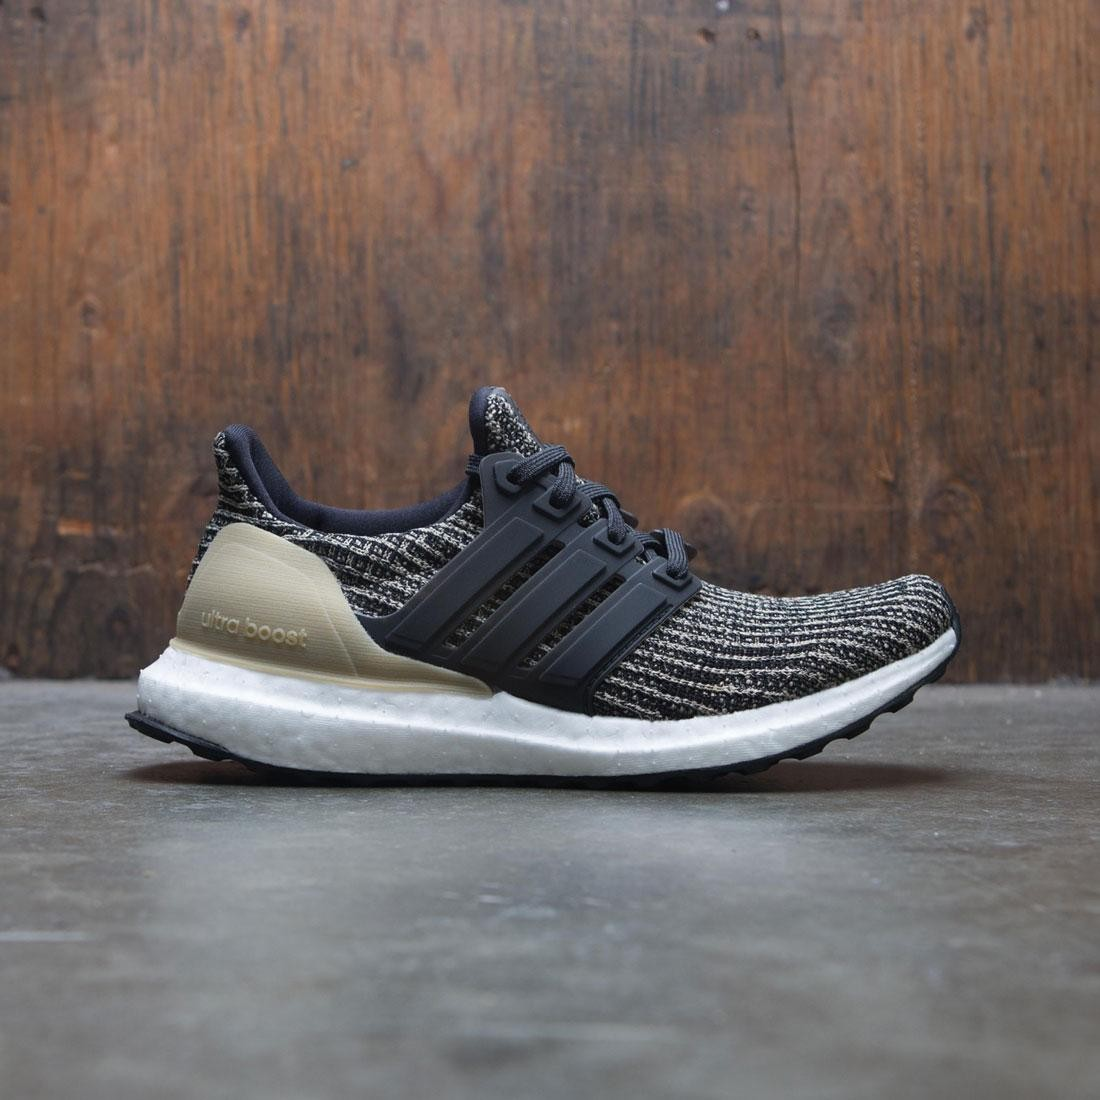 0e6dab9cbca Adidas Big Kids UltraBOOST J black core black raw gold